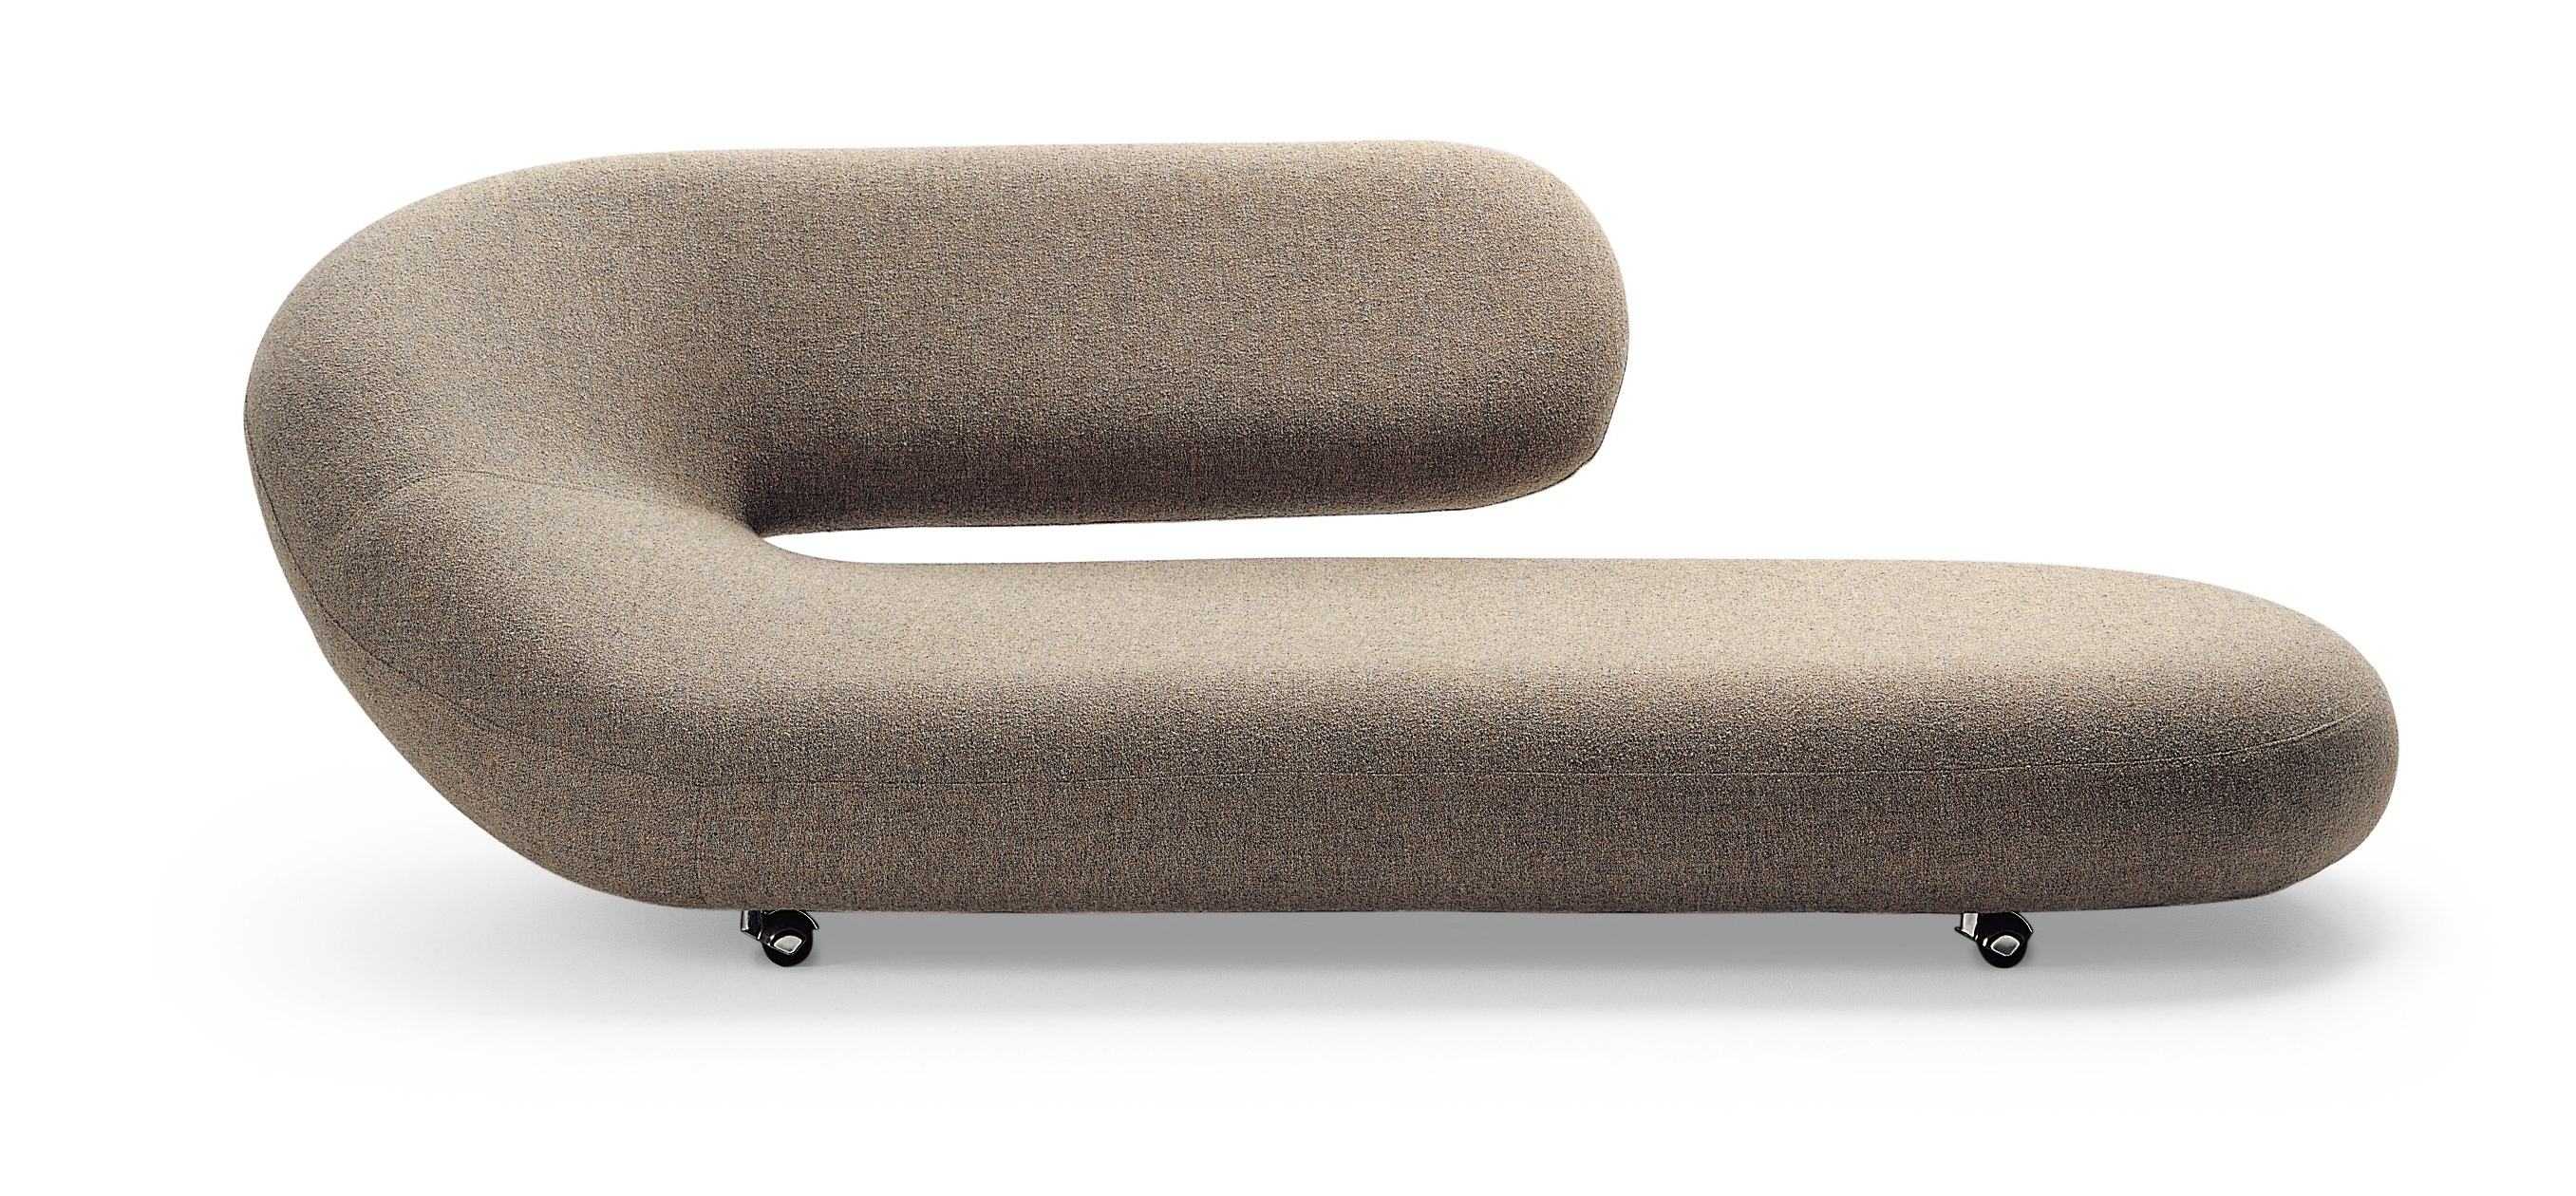 Popular Modern Chaise Longues Inside Fresh Contemporary Leather Chaise Lounge # (View 12 of 15)